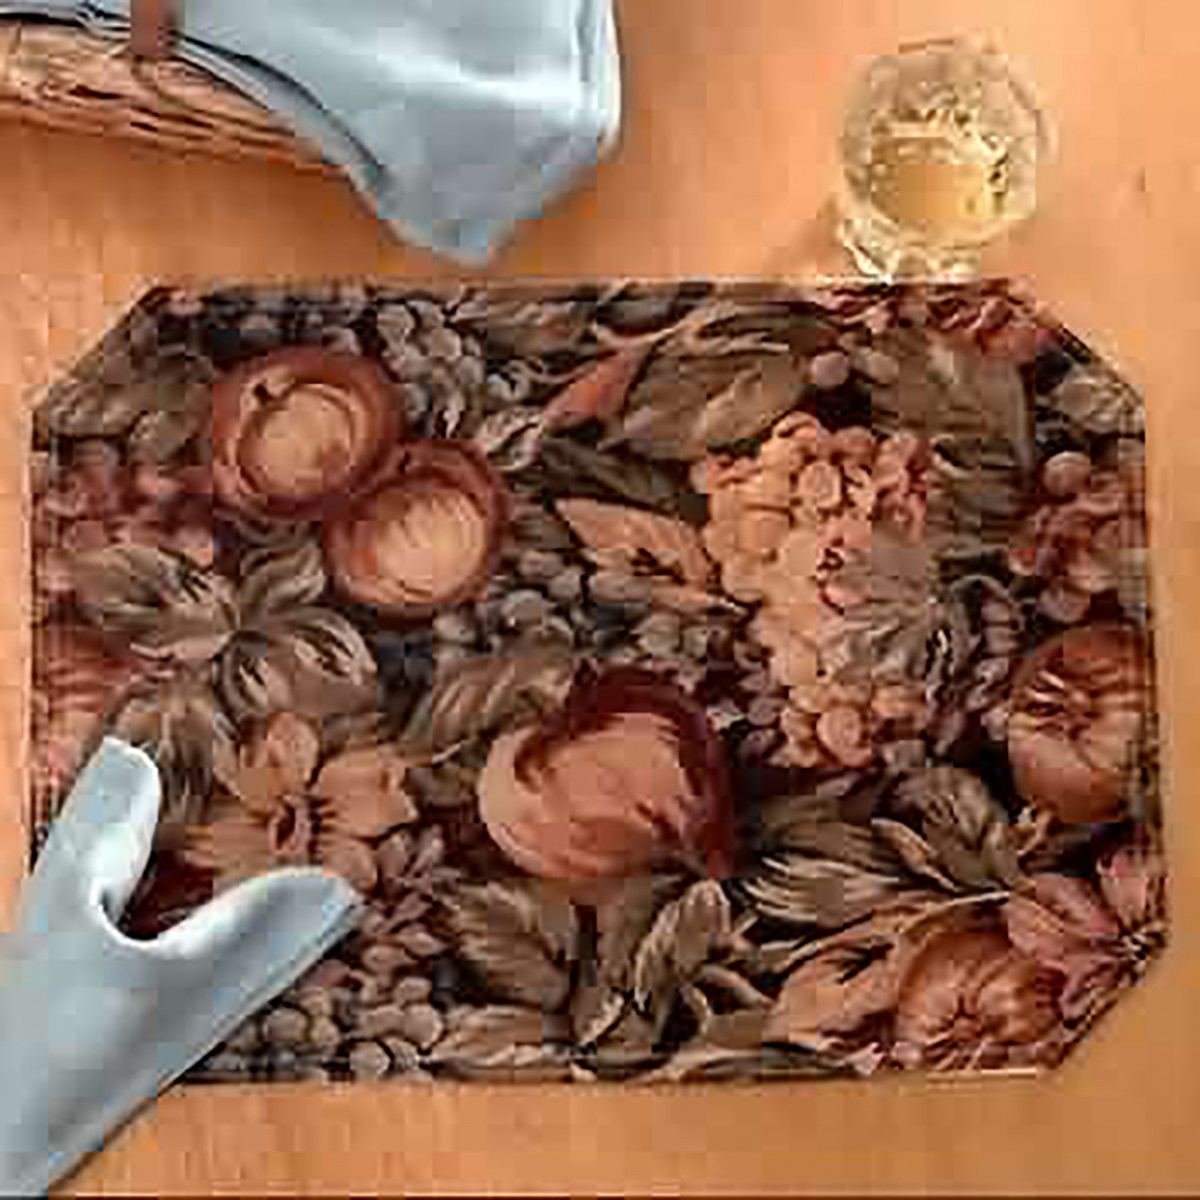 Kitchen Placemats Fruitful Harvest Polyester Set of 4 Placemats Placemat Cotton Placemat